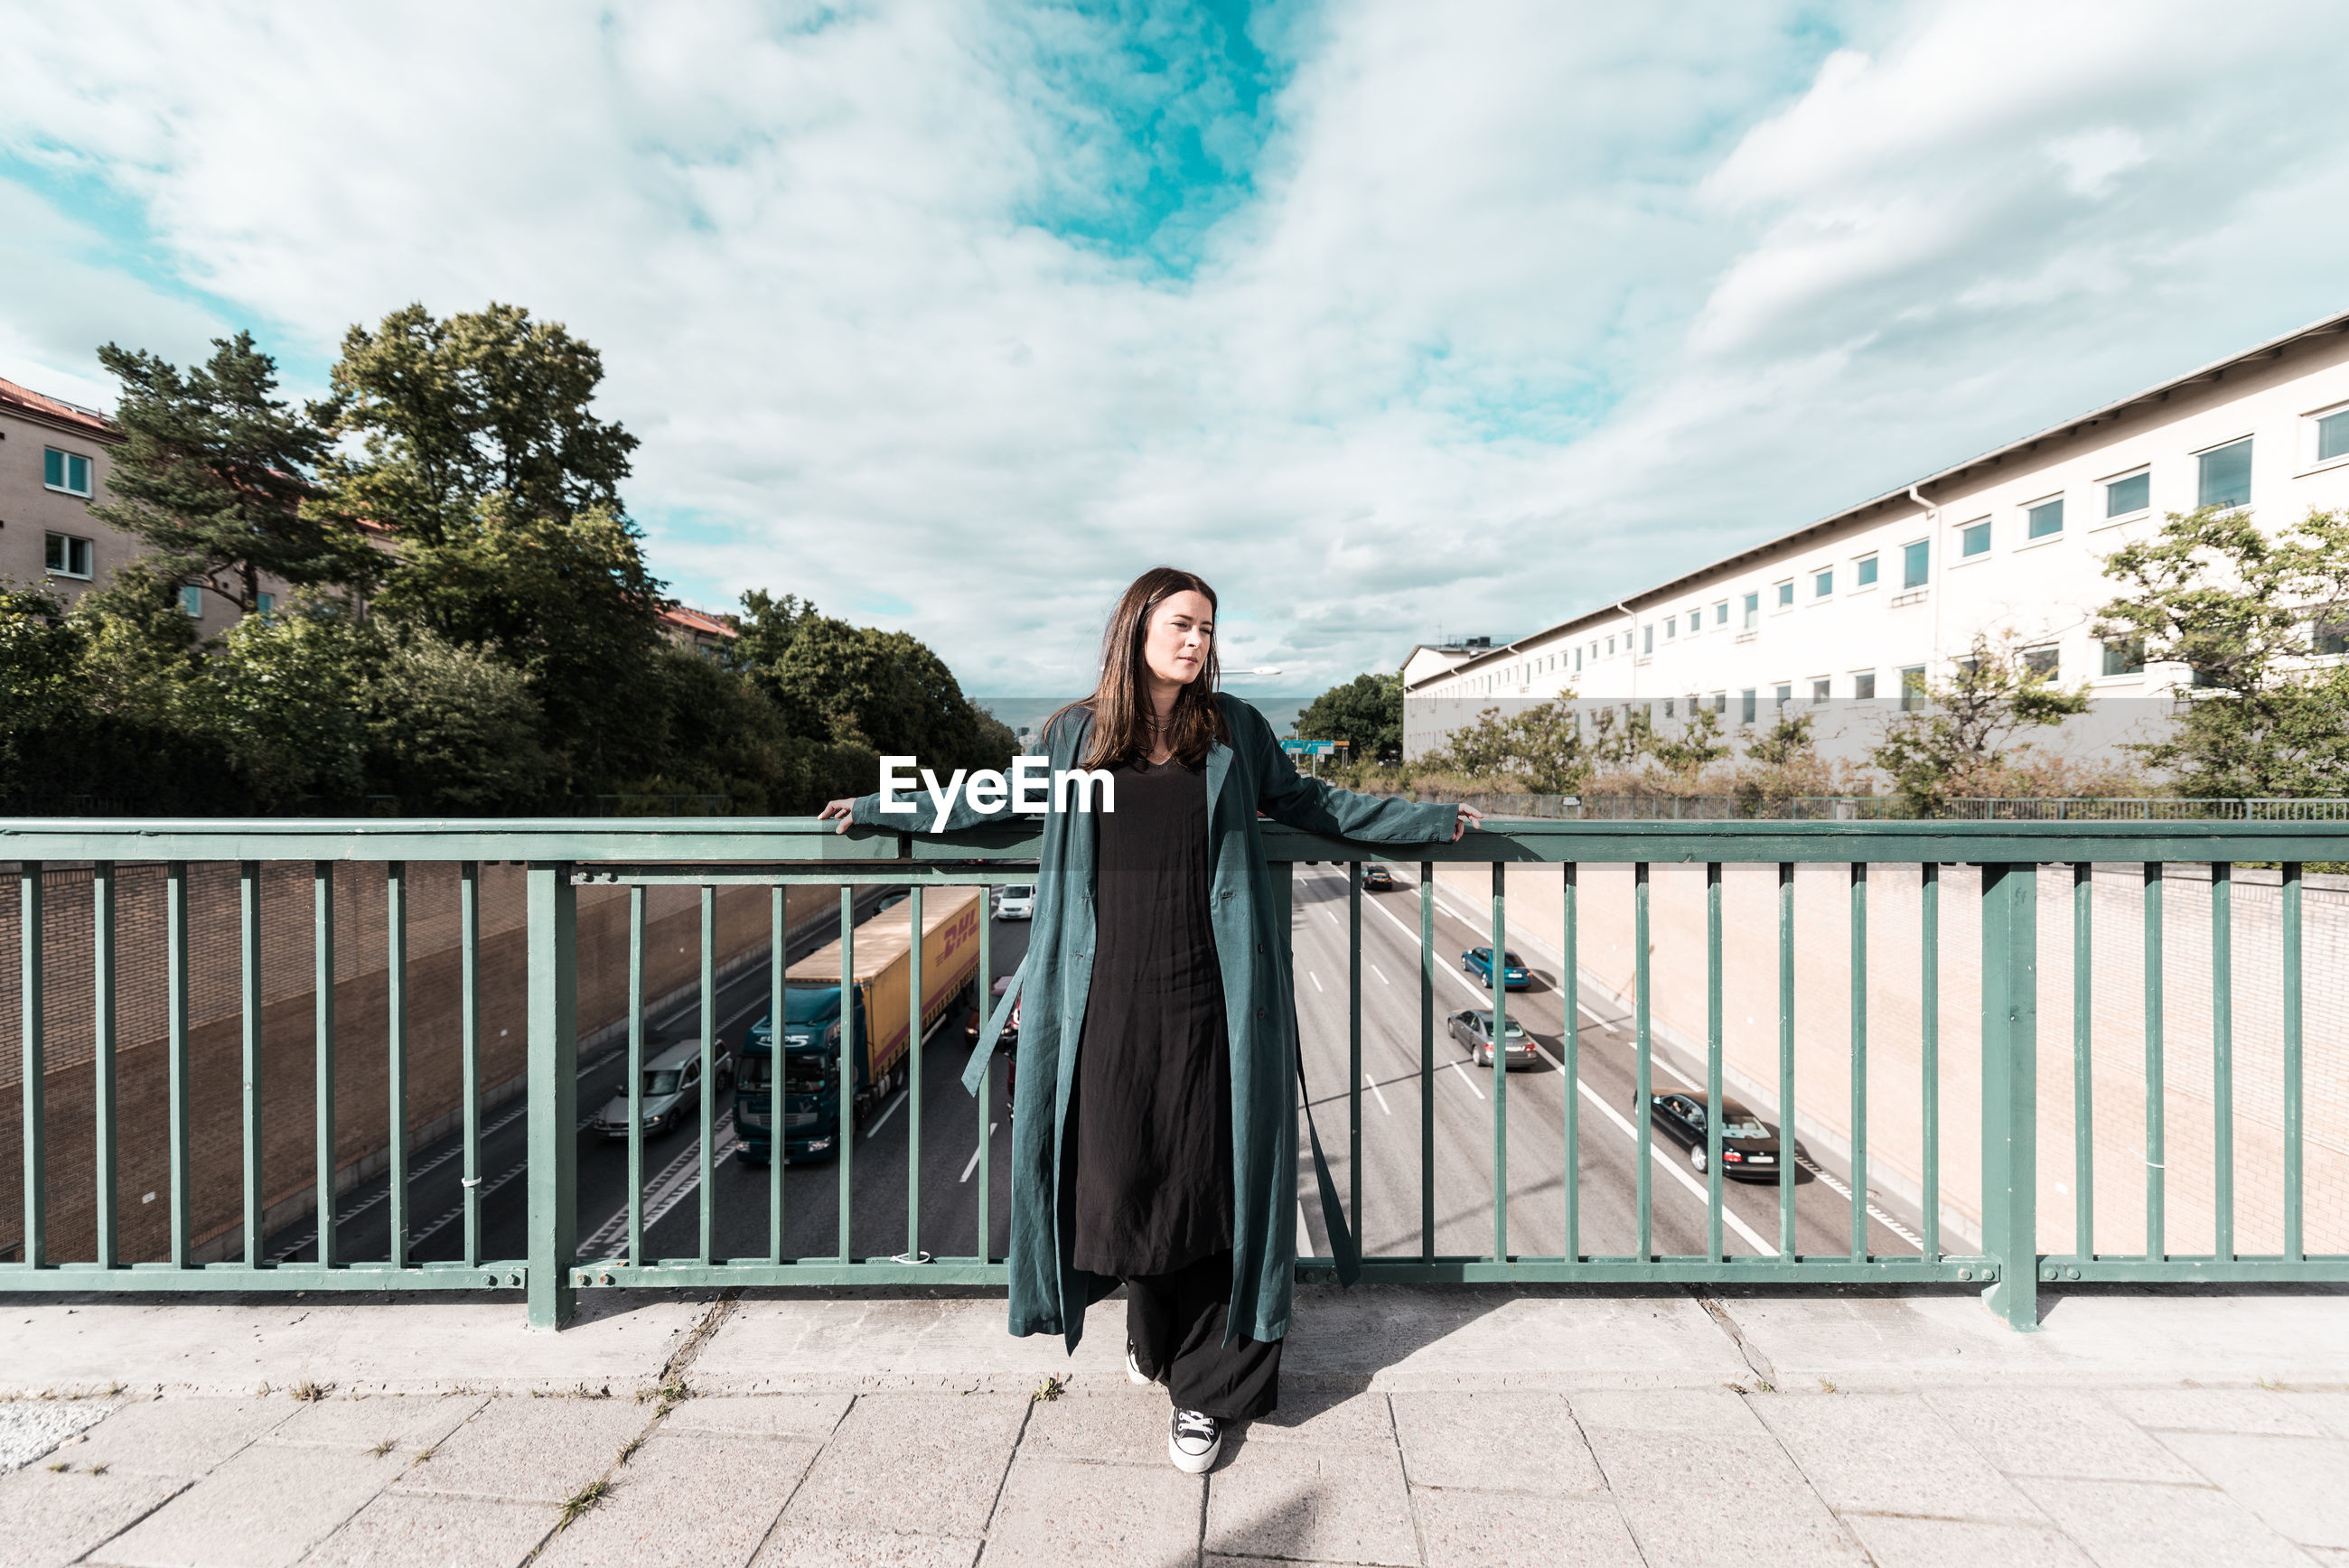 Mid adult woman standing by railing on footbridge against cloudy sky